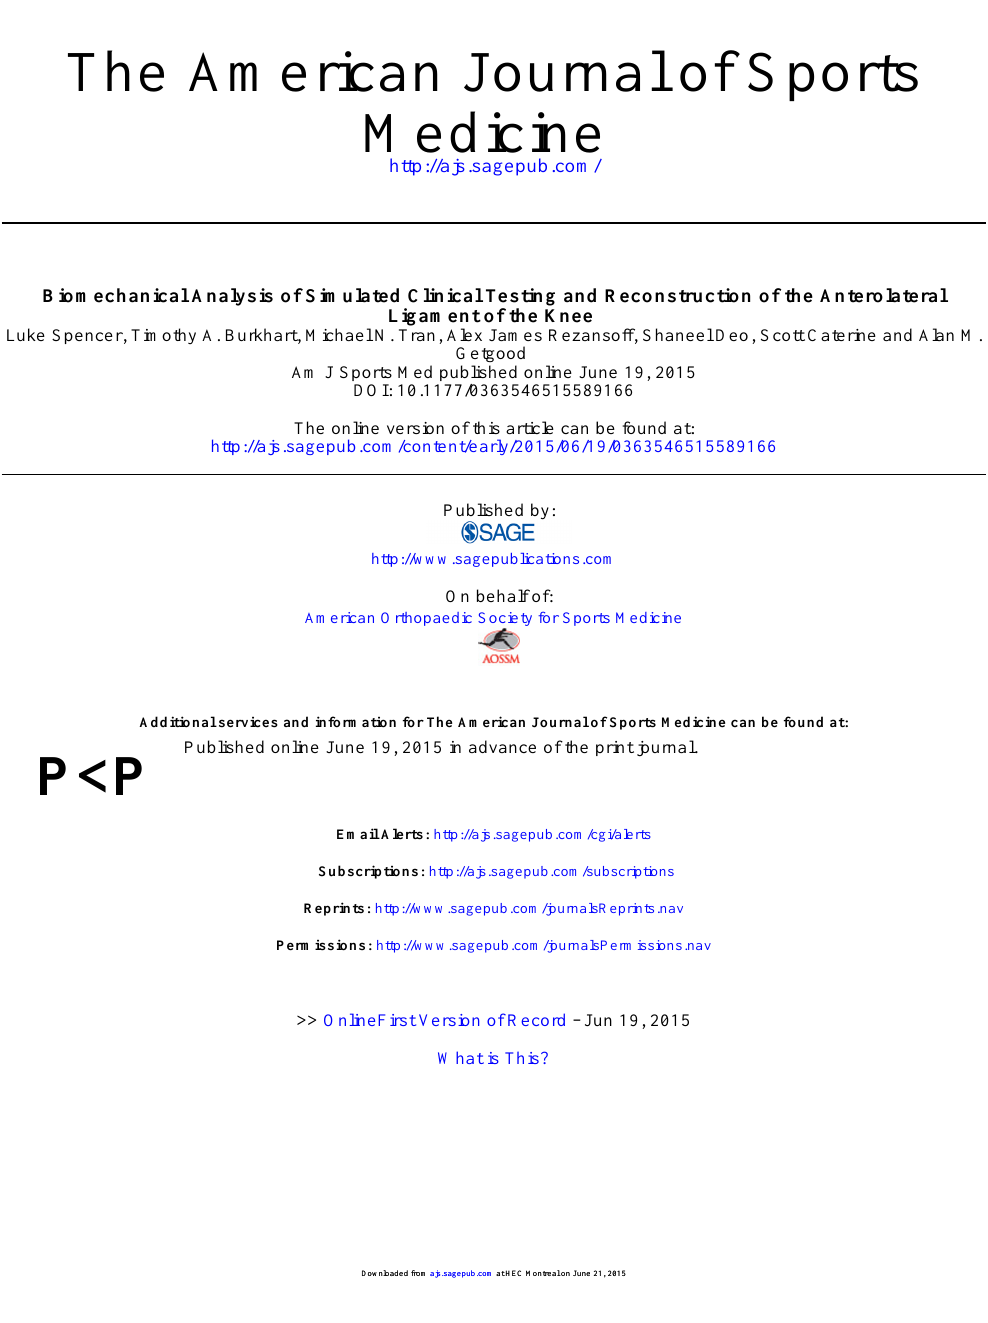 Biomechanical Analysis of Simulated Clinical Testing and